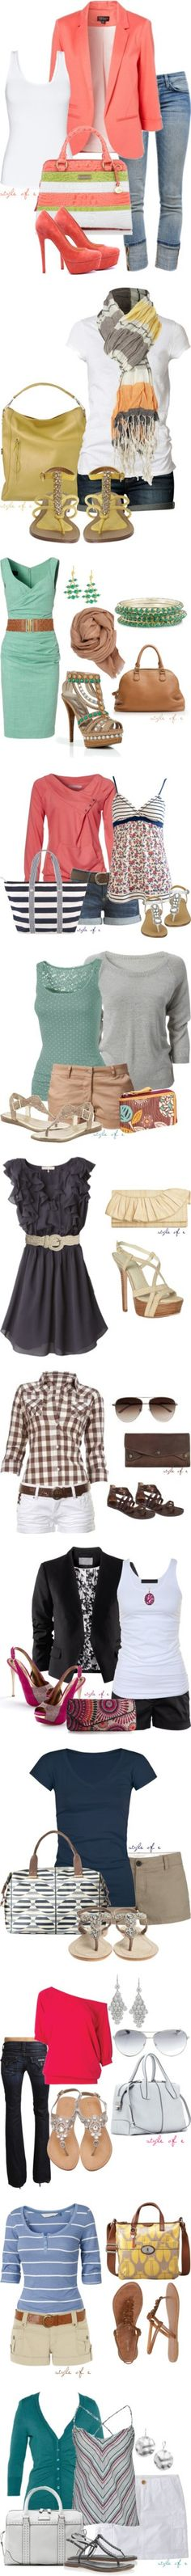 A lot of Cute outfit ideas on one page! I would wear these.